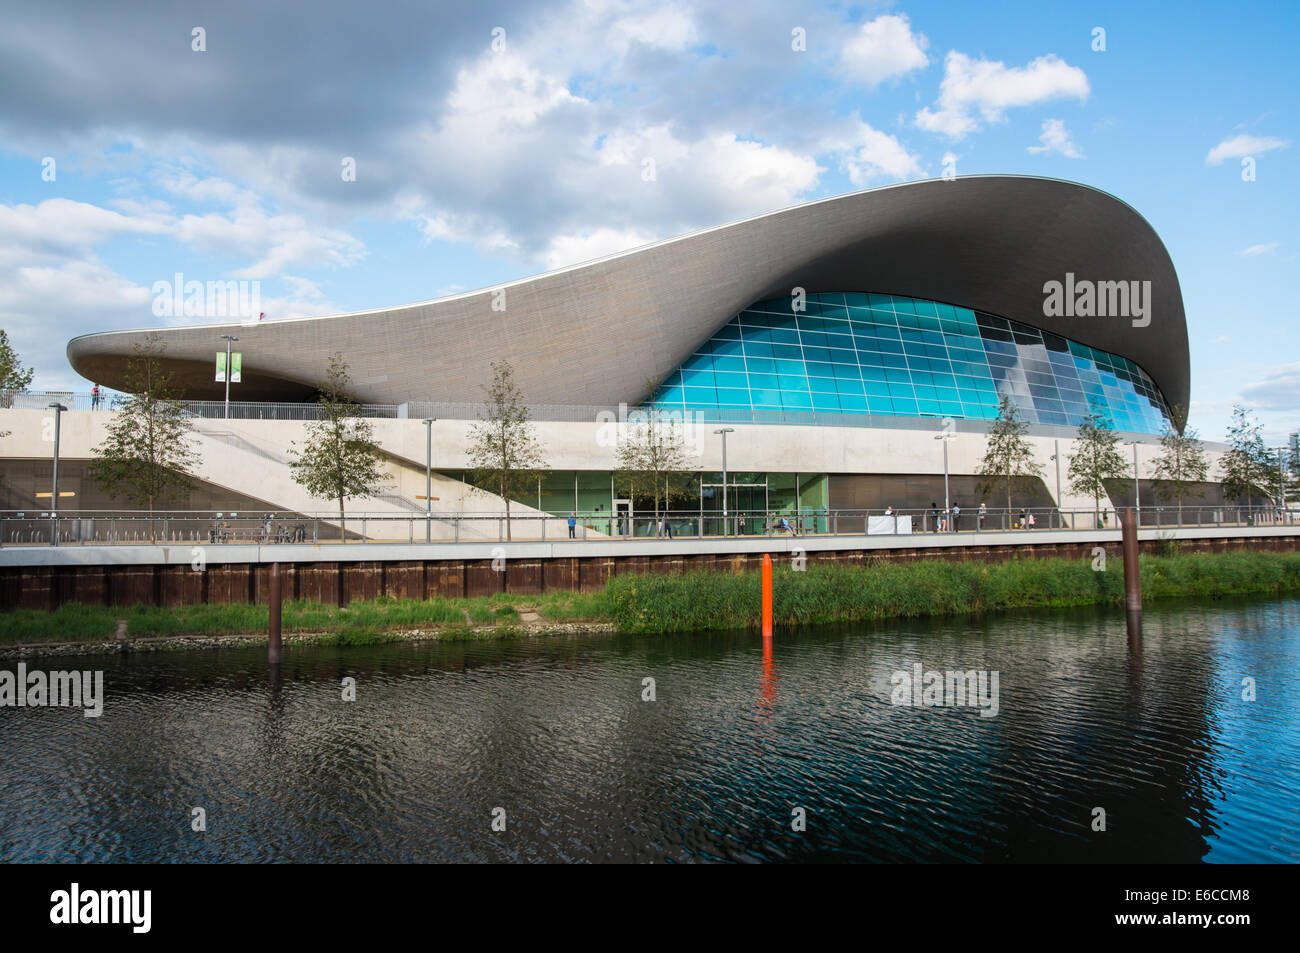 London Aquatics Centre At The Queen Elizabeth Olympic Park In London Stock Photo Royalty Free